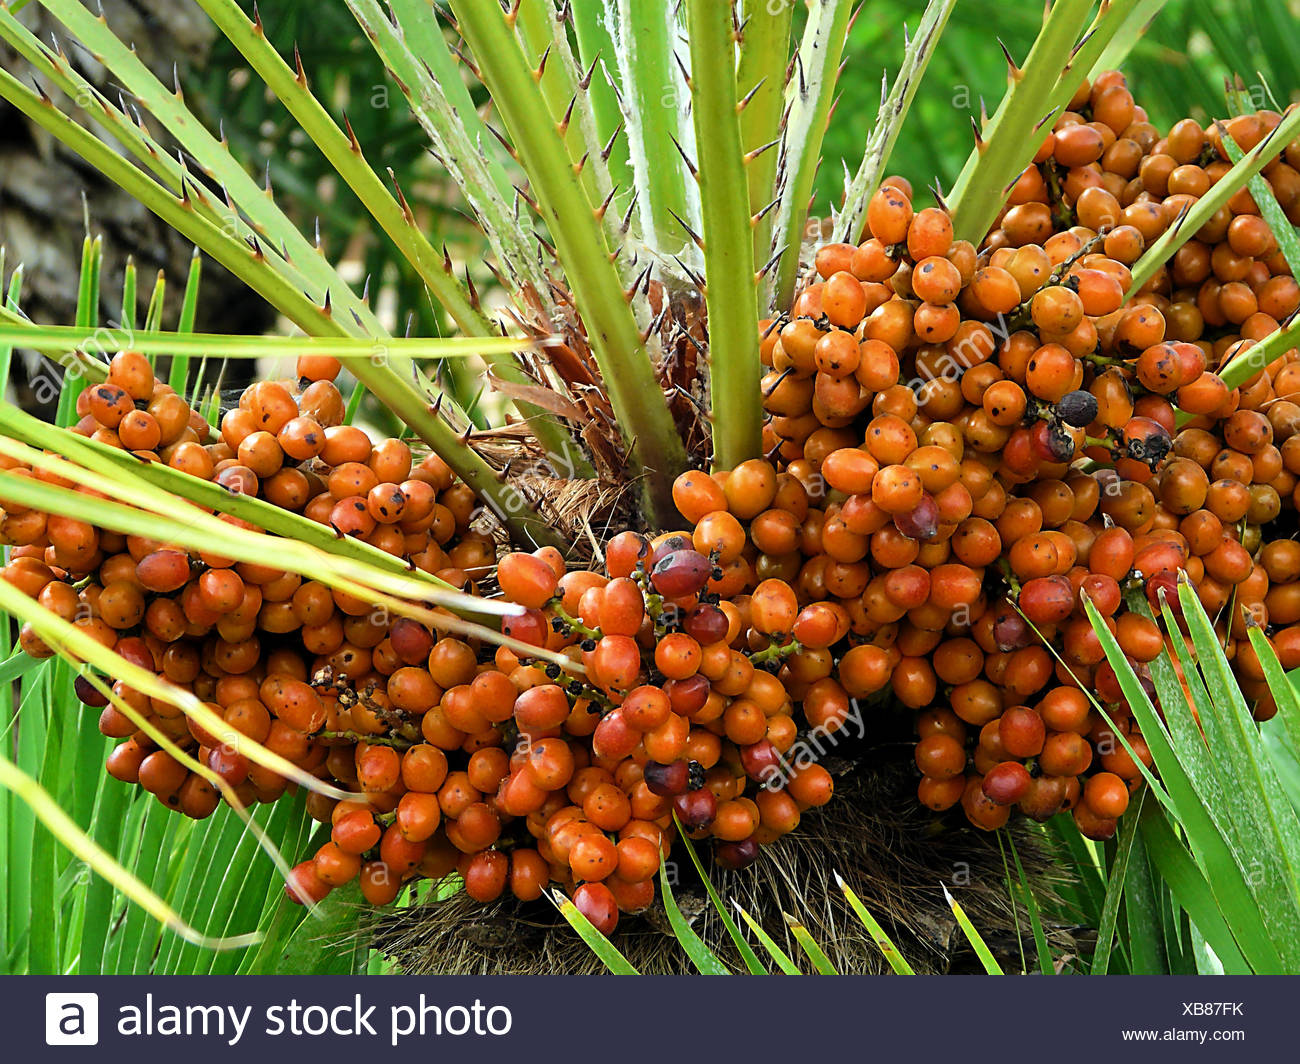 fruit palmier dattier arbre plante utile feuille date palm tree